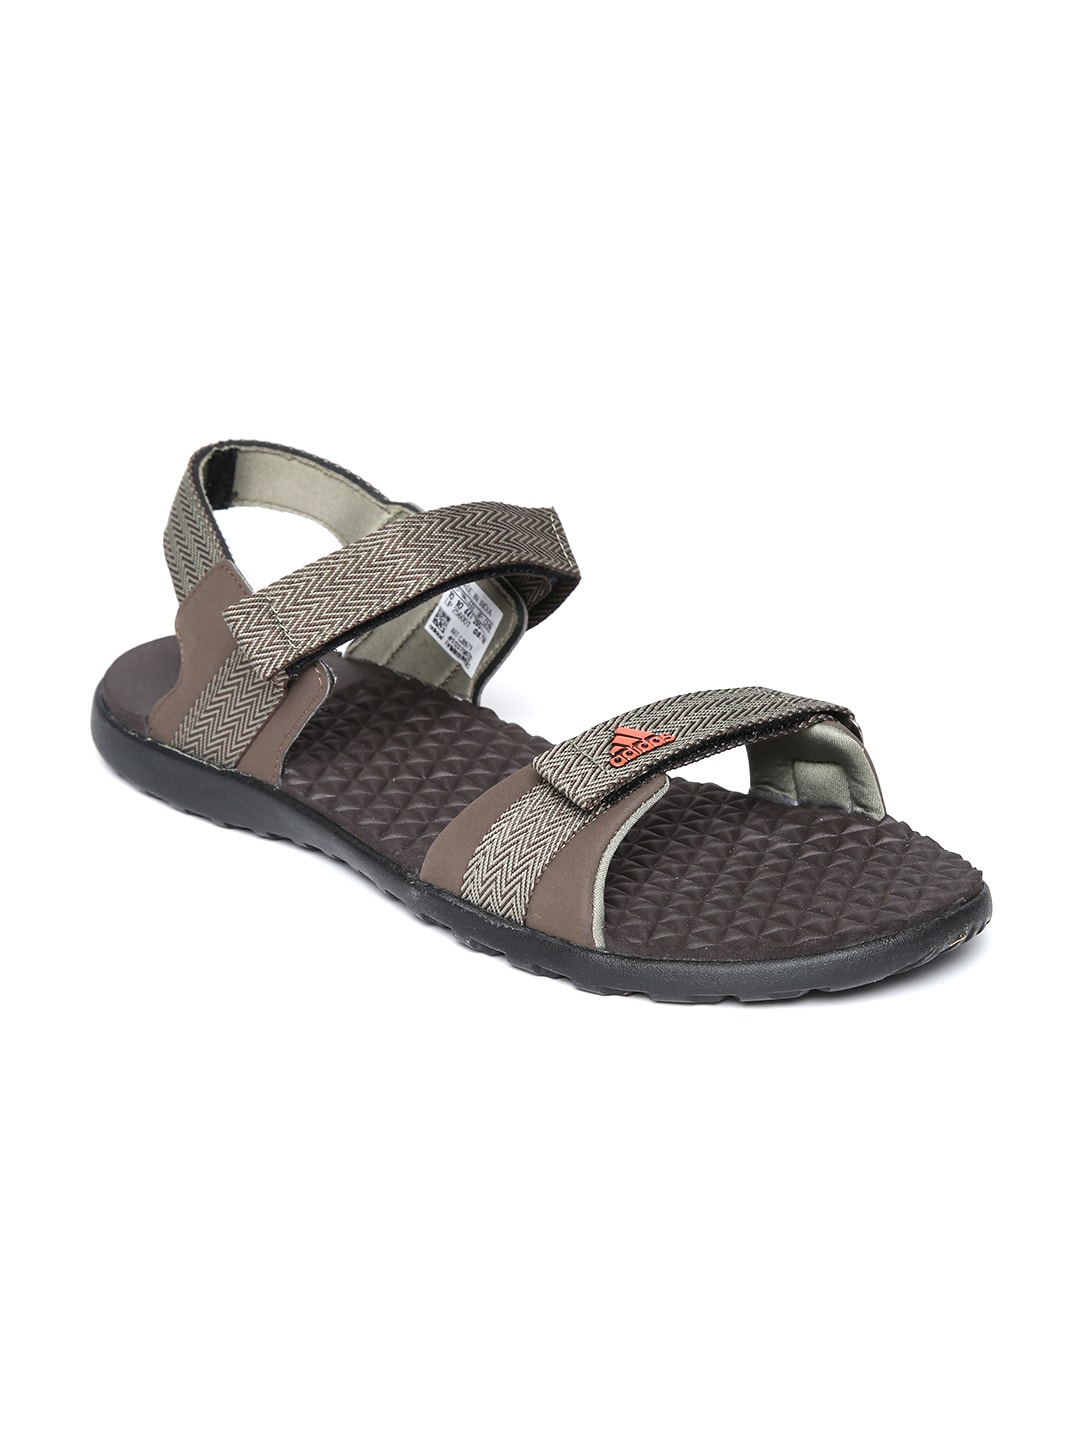 1fc4718dc3d8 Men Adidas Sports Sandals - Buy Men Adidas Sports Sandals online in India